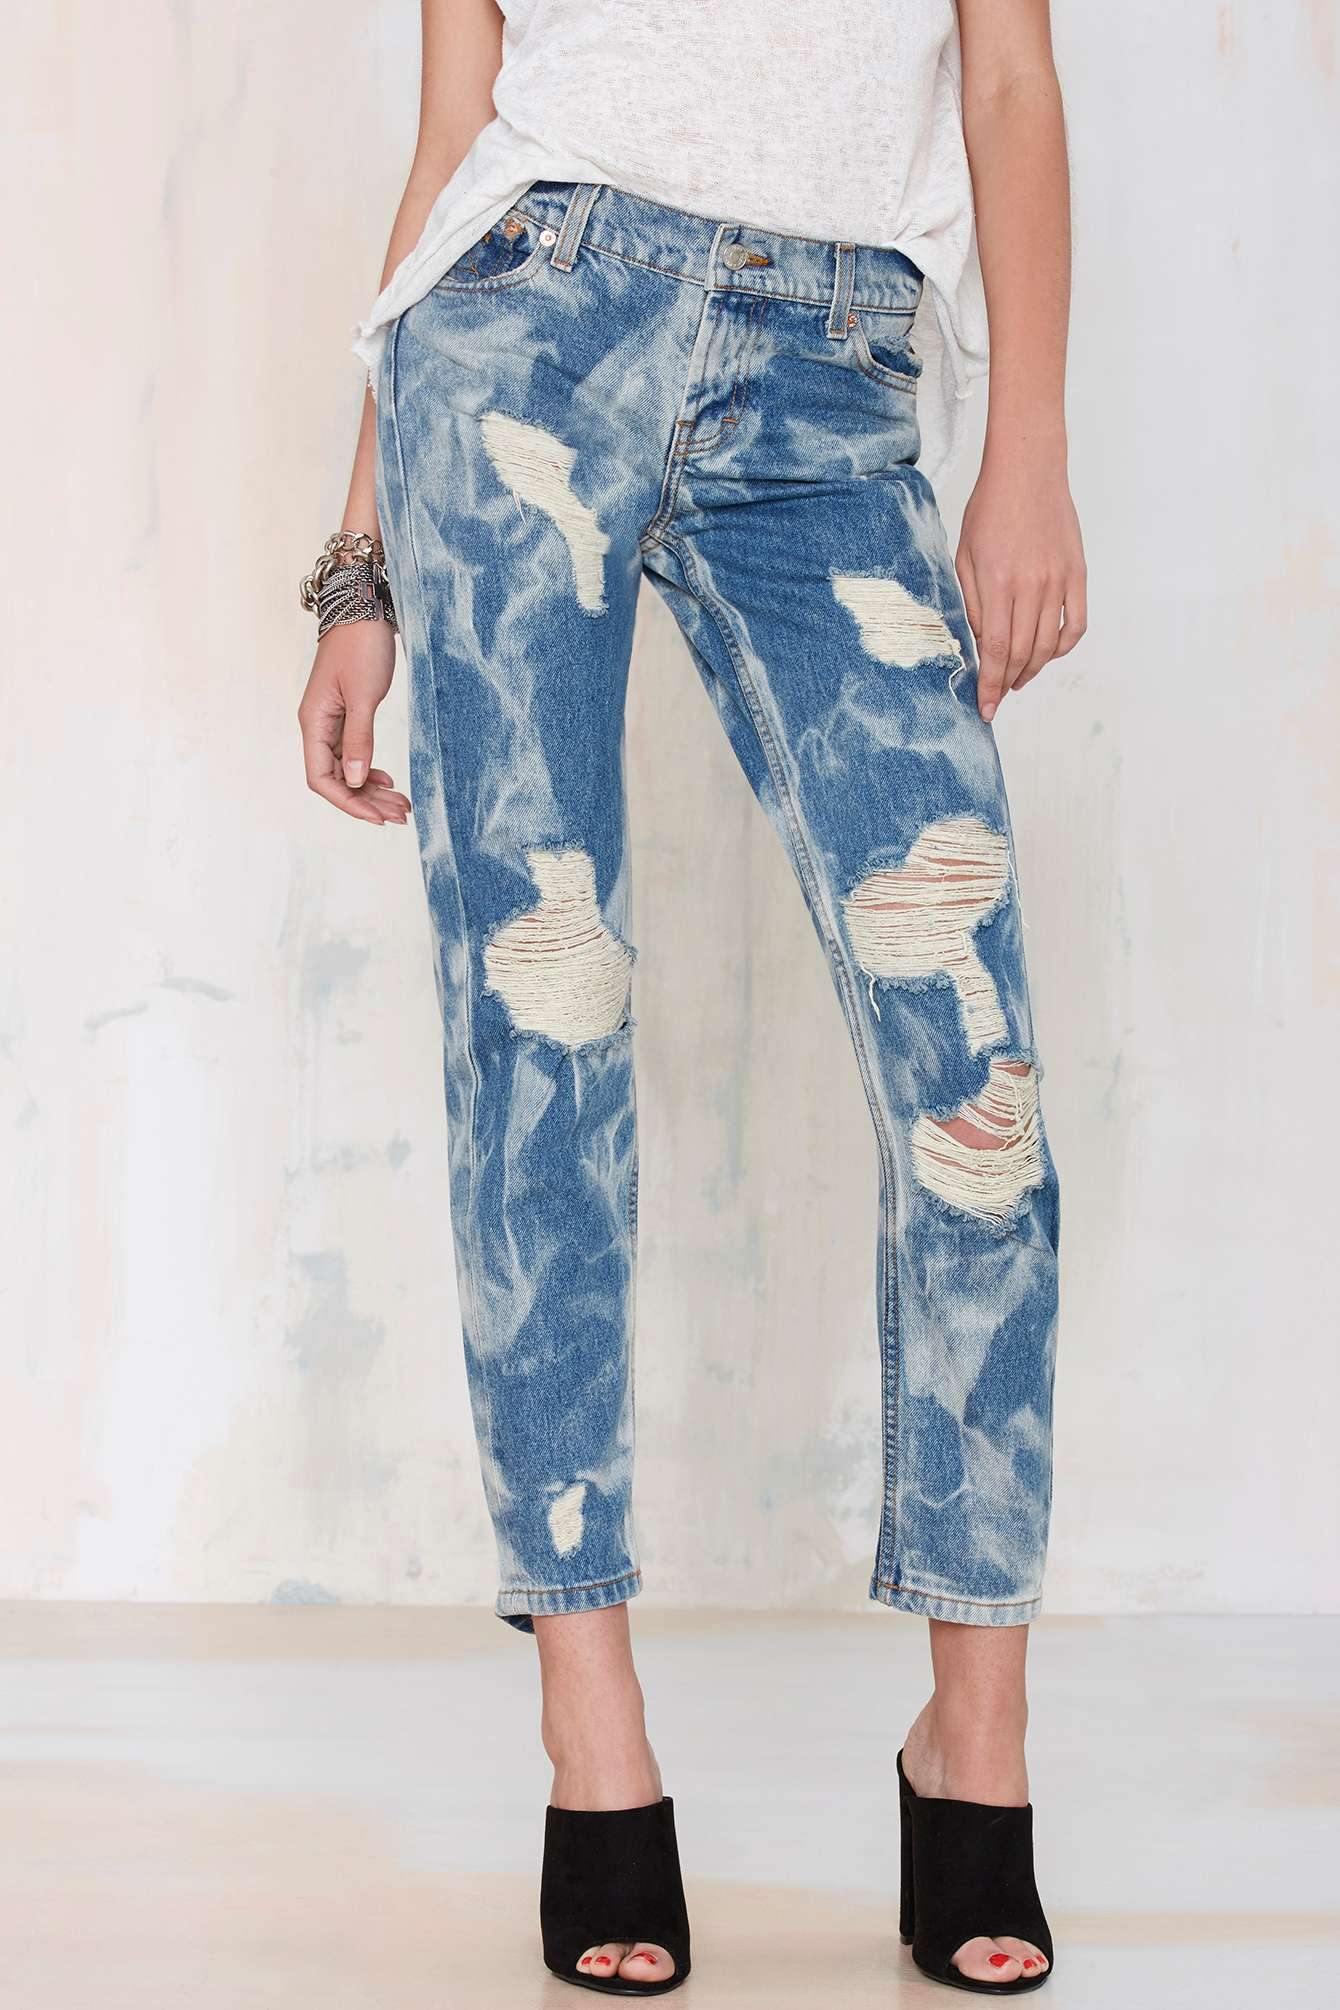 Nasty gal The Laundry Room California Bad Boys Boyfriend Jeans in ...